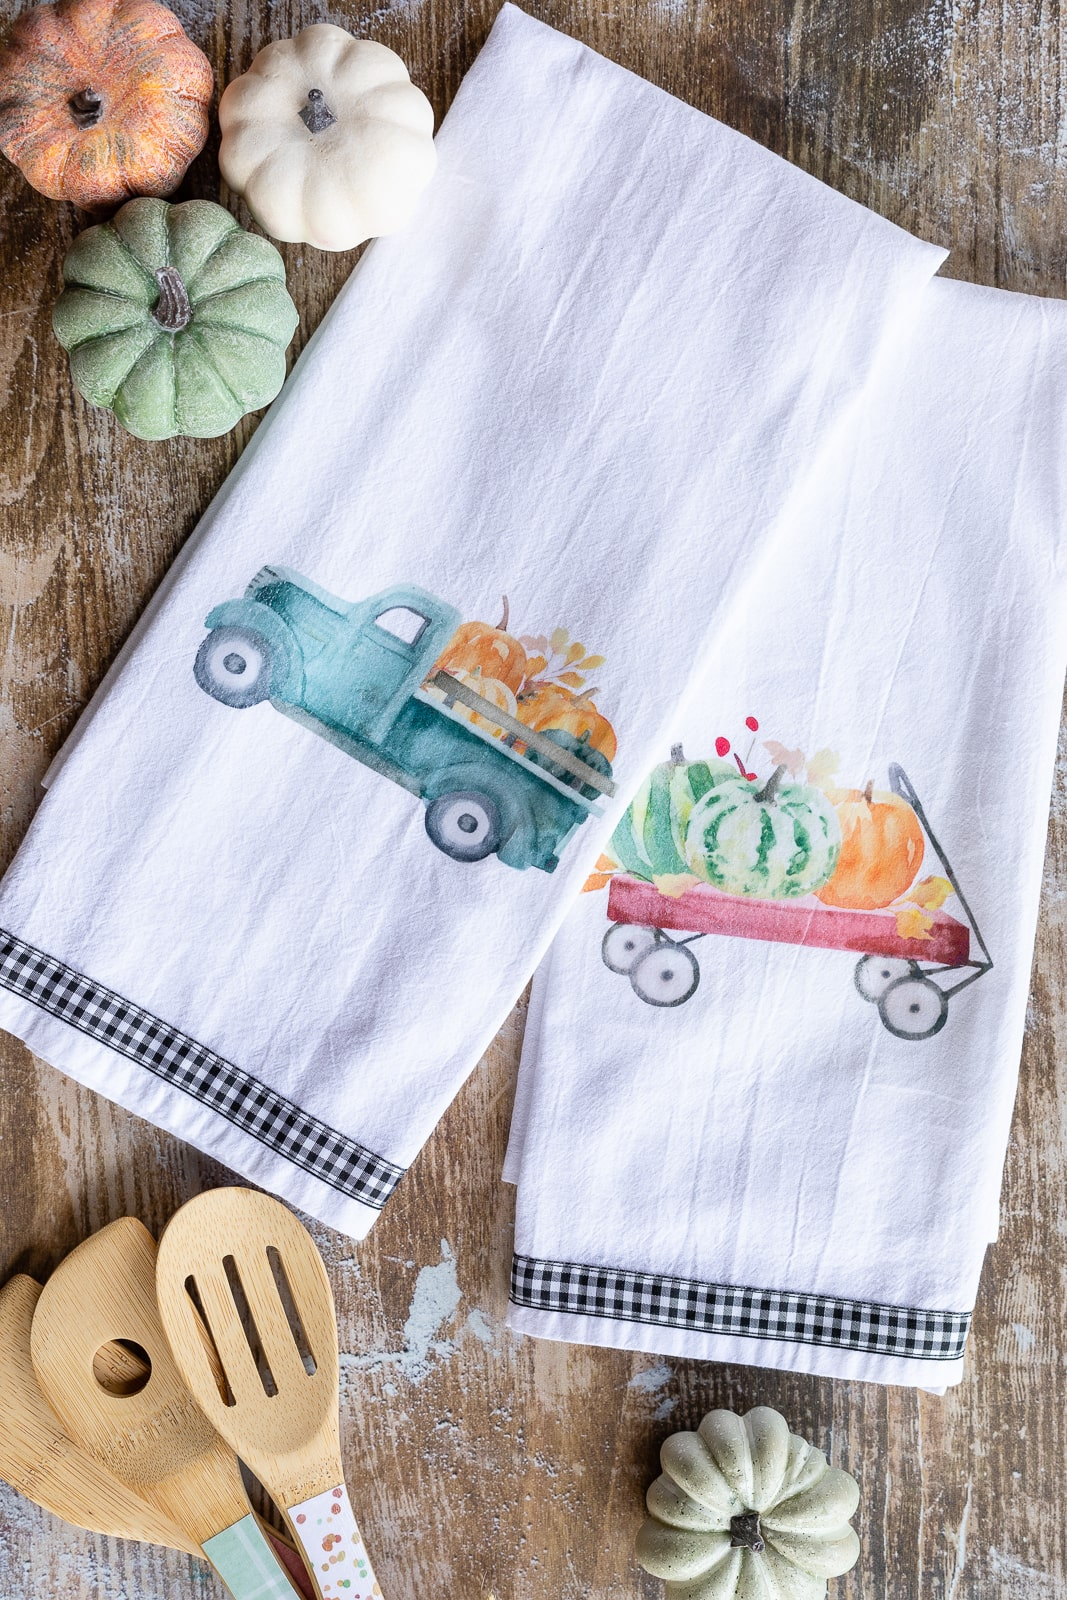 DIY tea towels made with image transfers showing farmhouse pumpkin wagon and truck theme